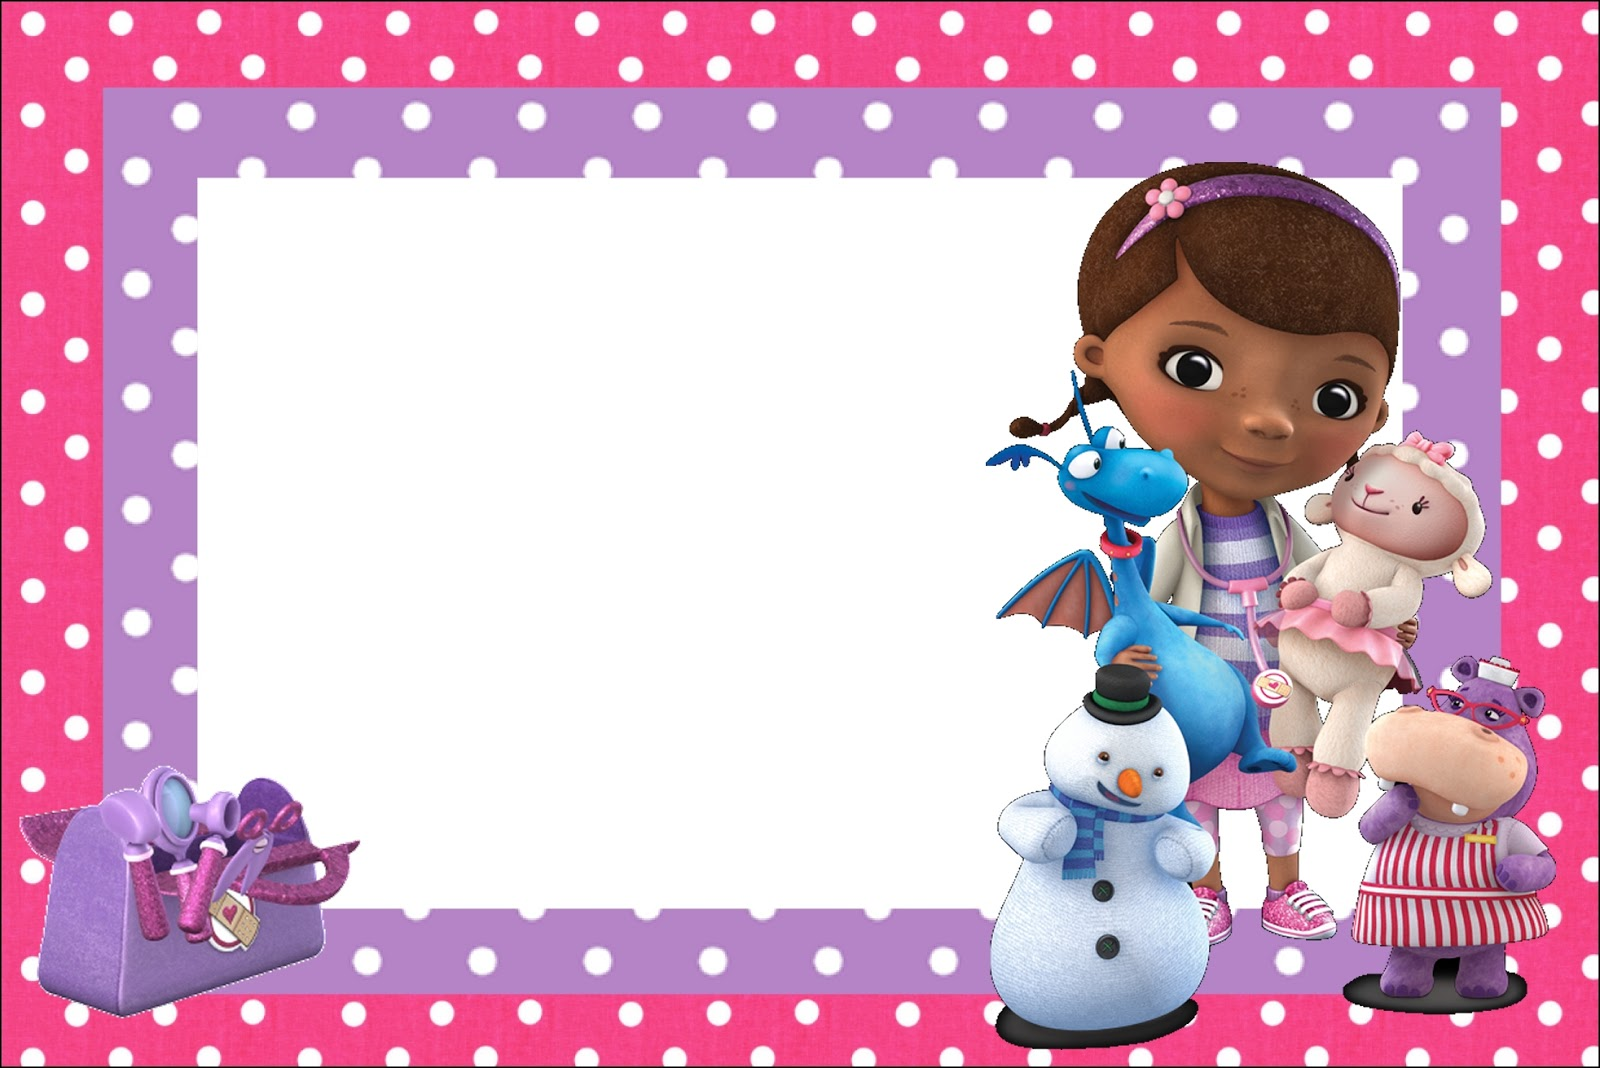 photograph regarding Doc Mcstuffins Printable Labels referred to as Document McStuffins: Cost-free Printable Invites. - Oh My Fiesta